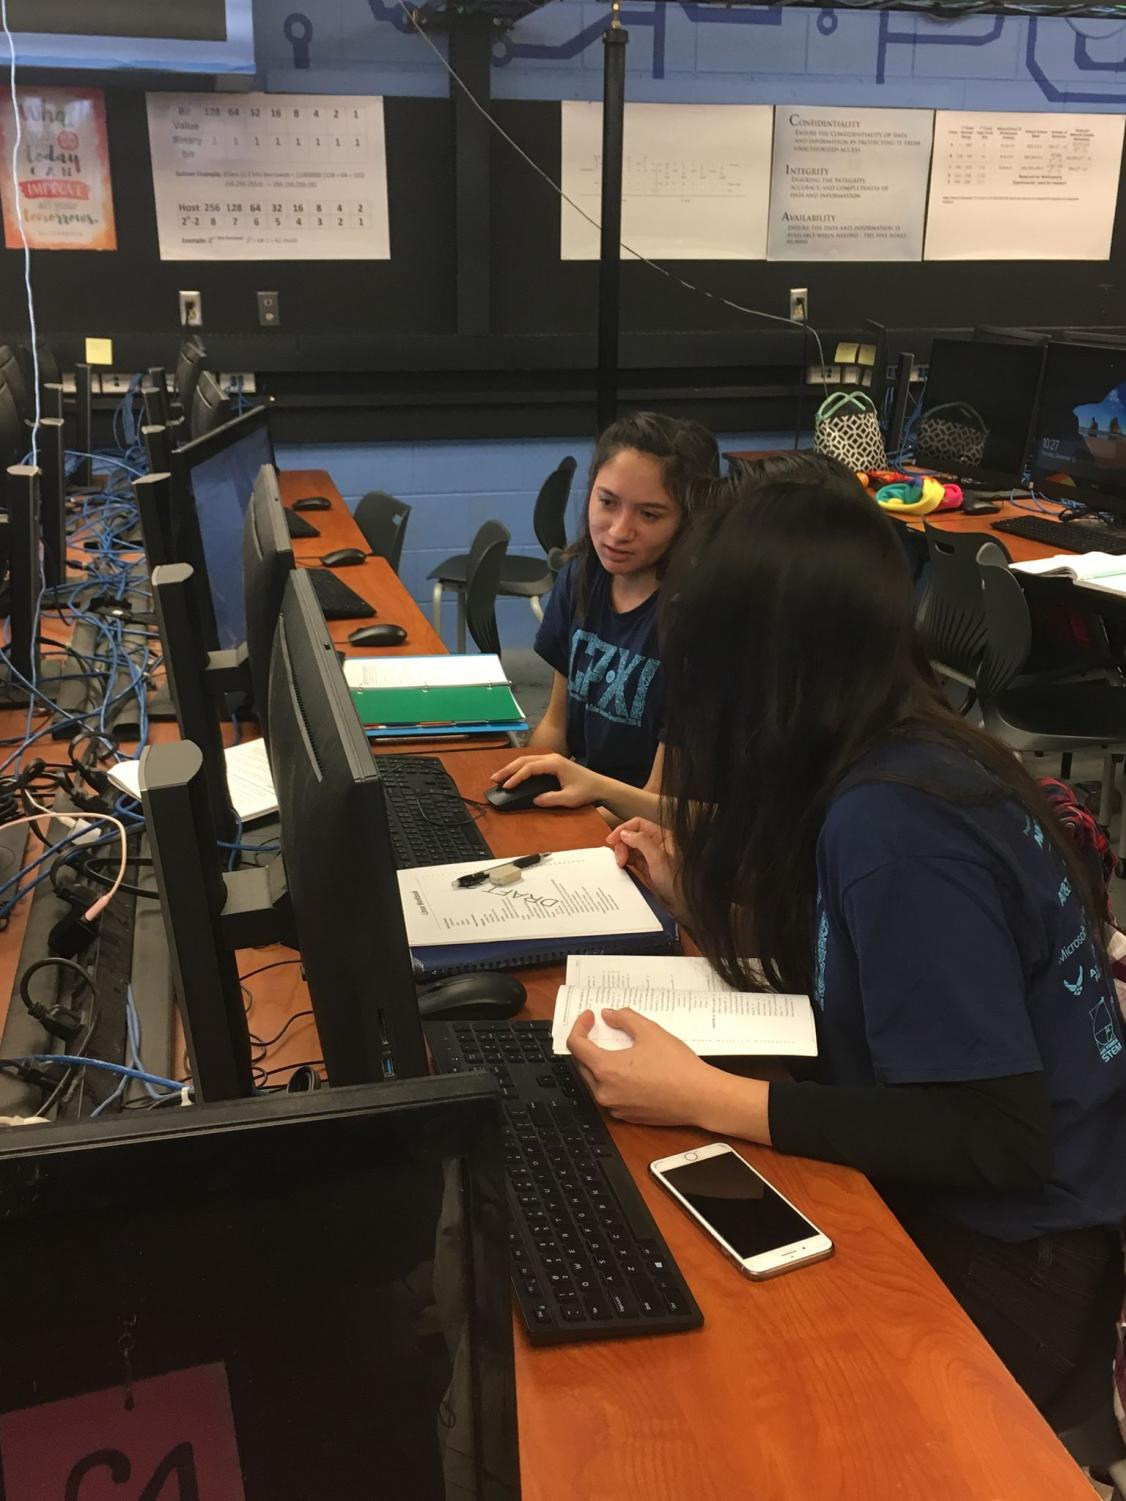 Samantha Bustamante (12) and other members of the girls' teams practicing for the competition at a computer.